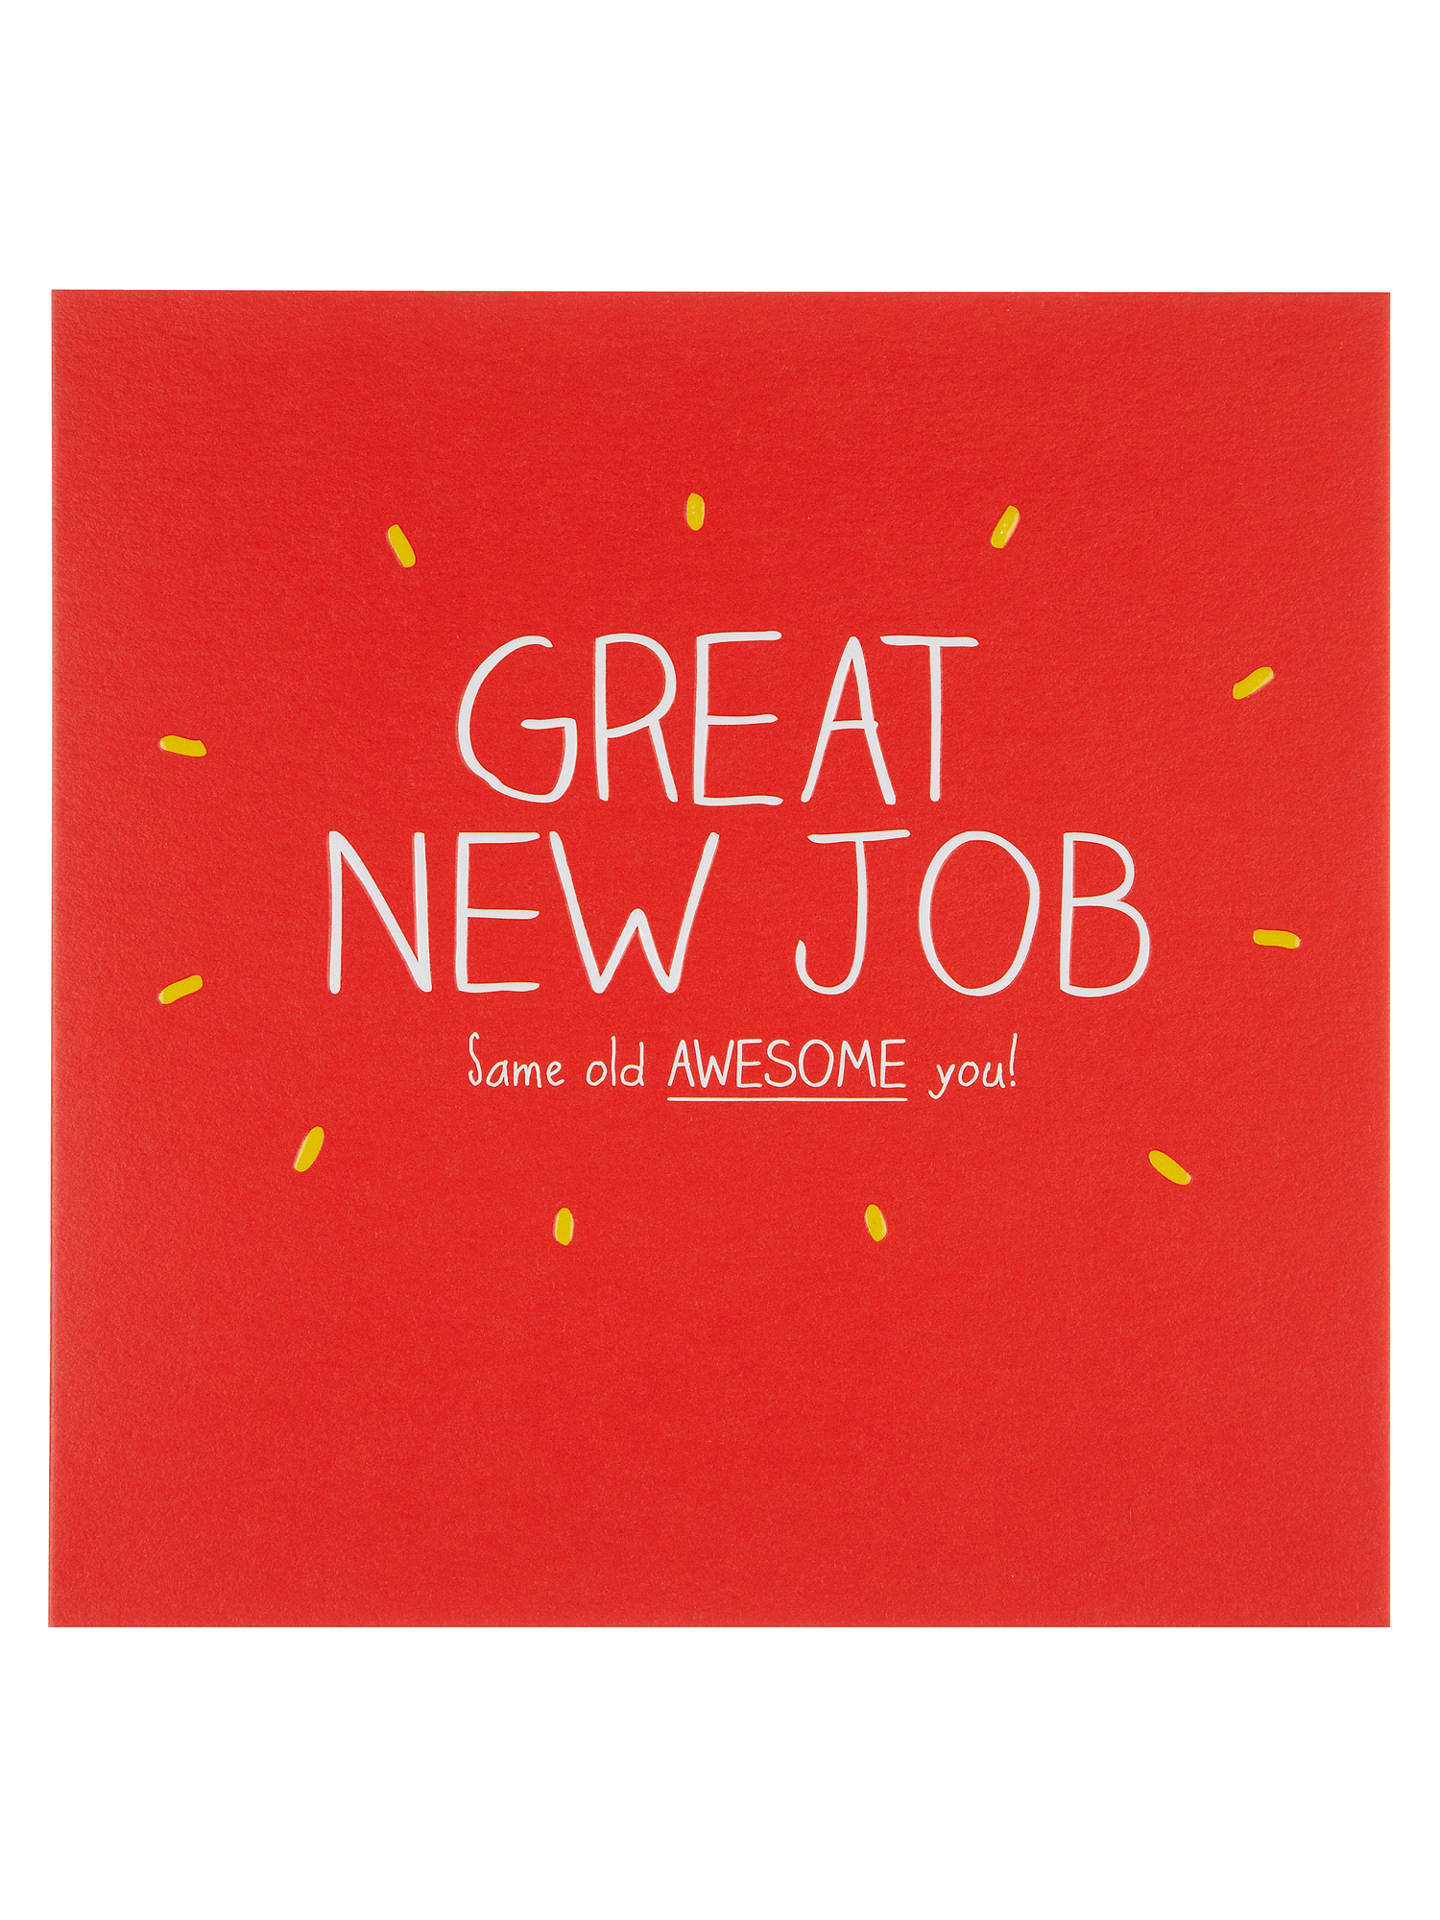 Happy jackson great new job greeting card at john lewis partners buyhappy jackson great new job greeting card online at johnlewis m4hsunfo